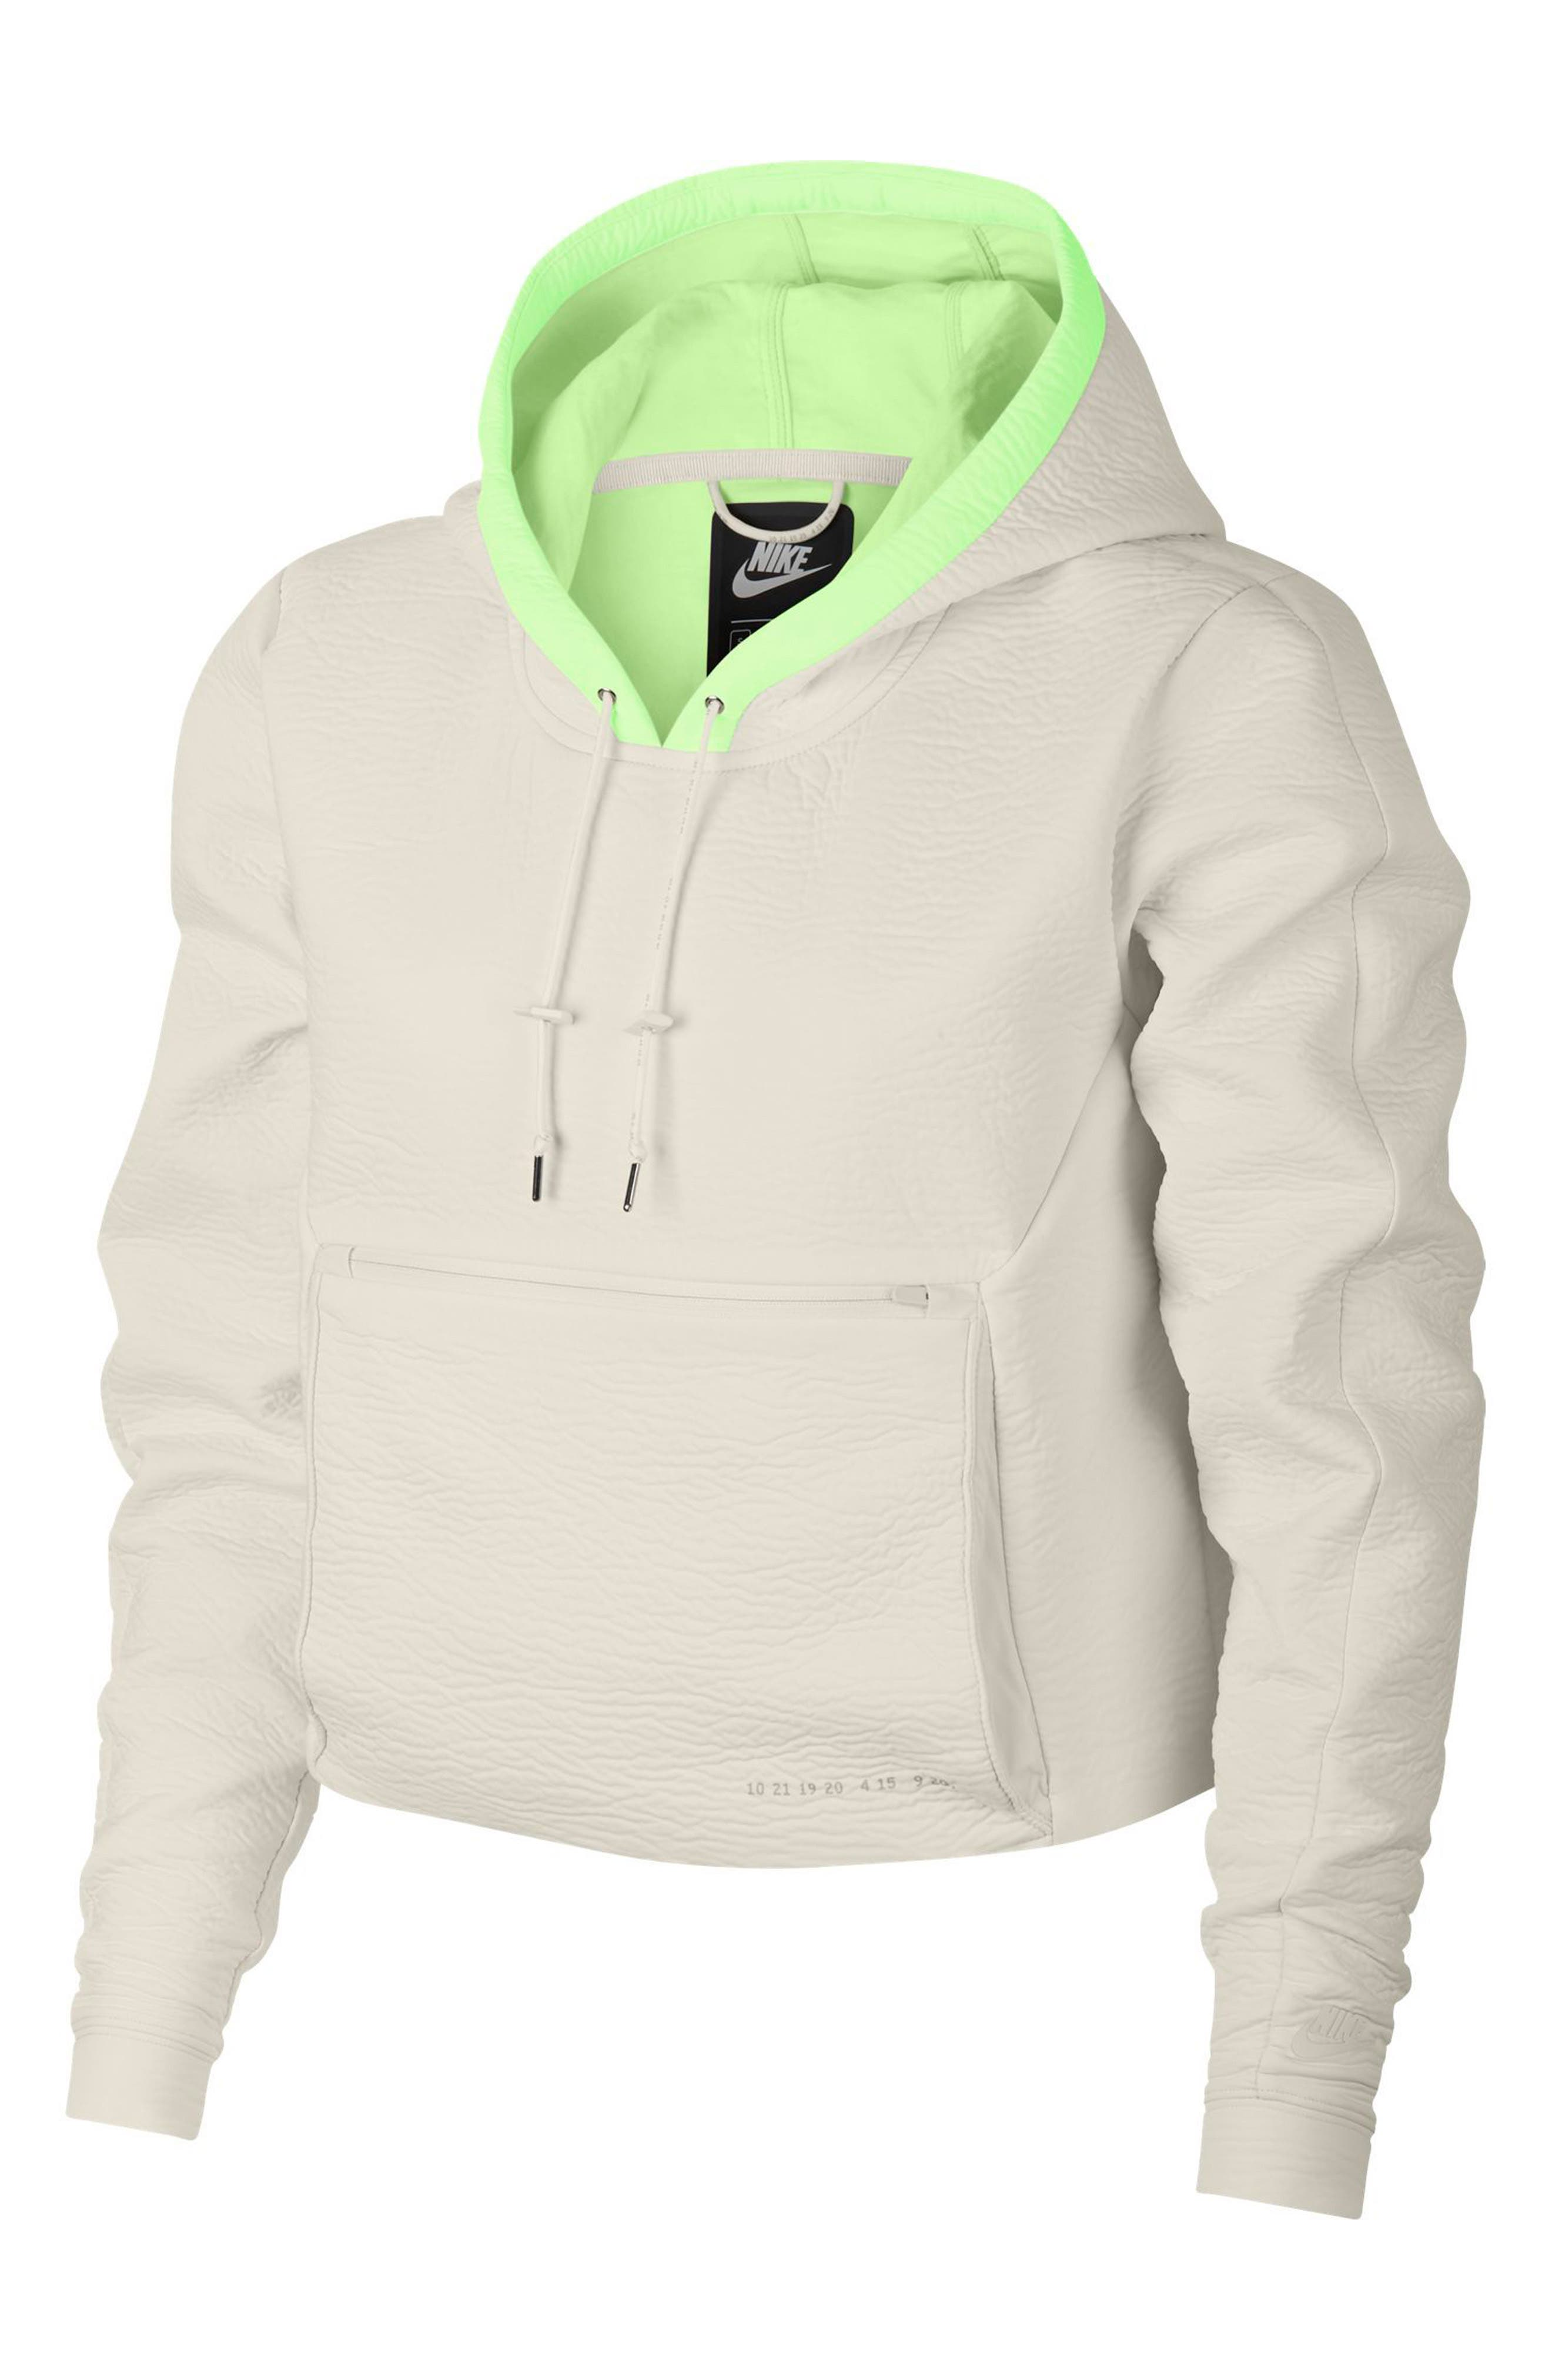 Sportswear Tech Pack Women's Hoodie,                         Main,                         color, PHANTOM/ PHANTOM